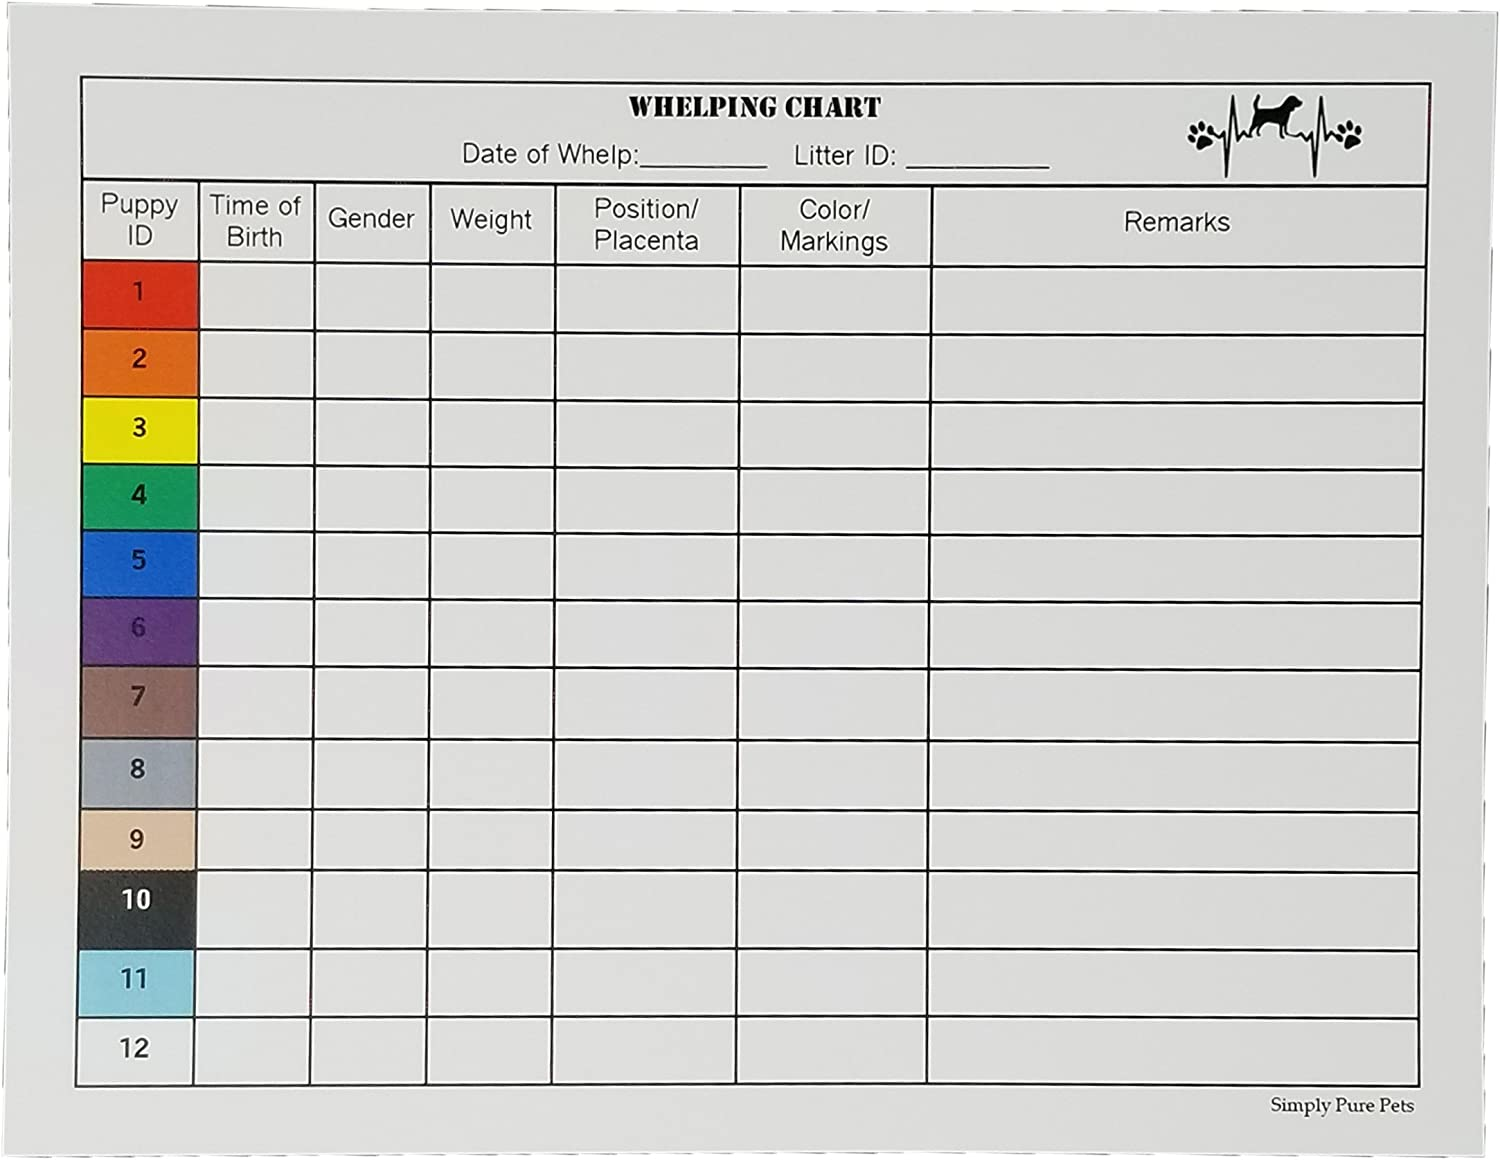 Amazon Com Two Arrows Puppy Whelping Charts For Record Keeping Great For Breeders Works Great For Recording And Tracking Data For Litters Pet Supplies